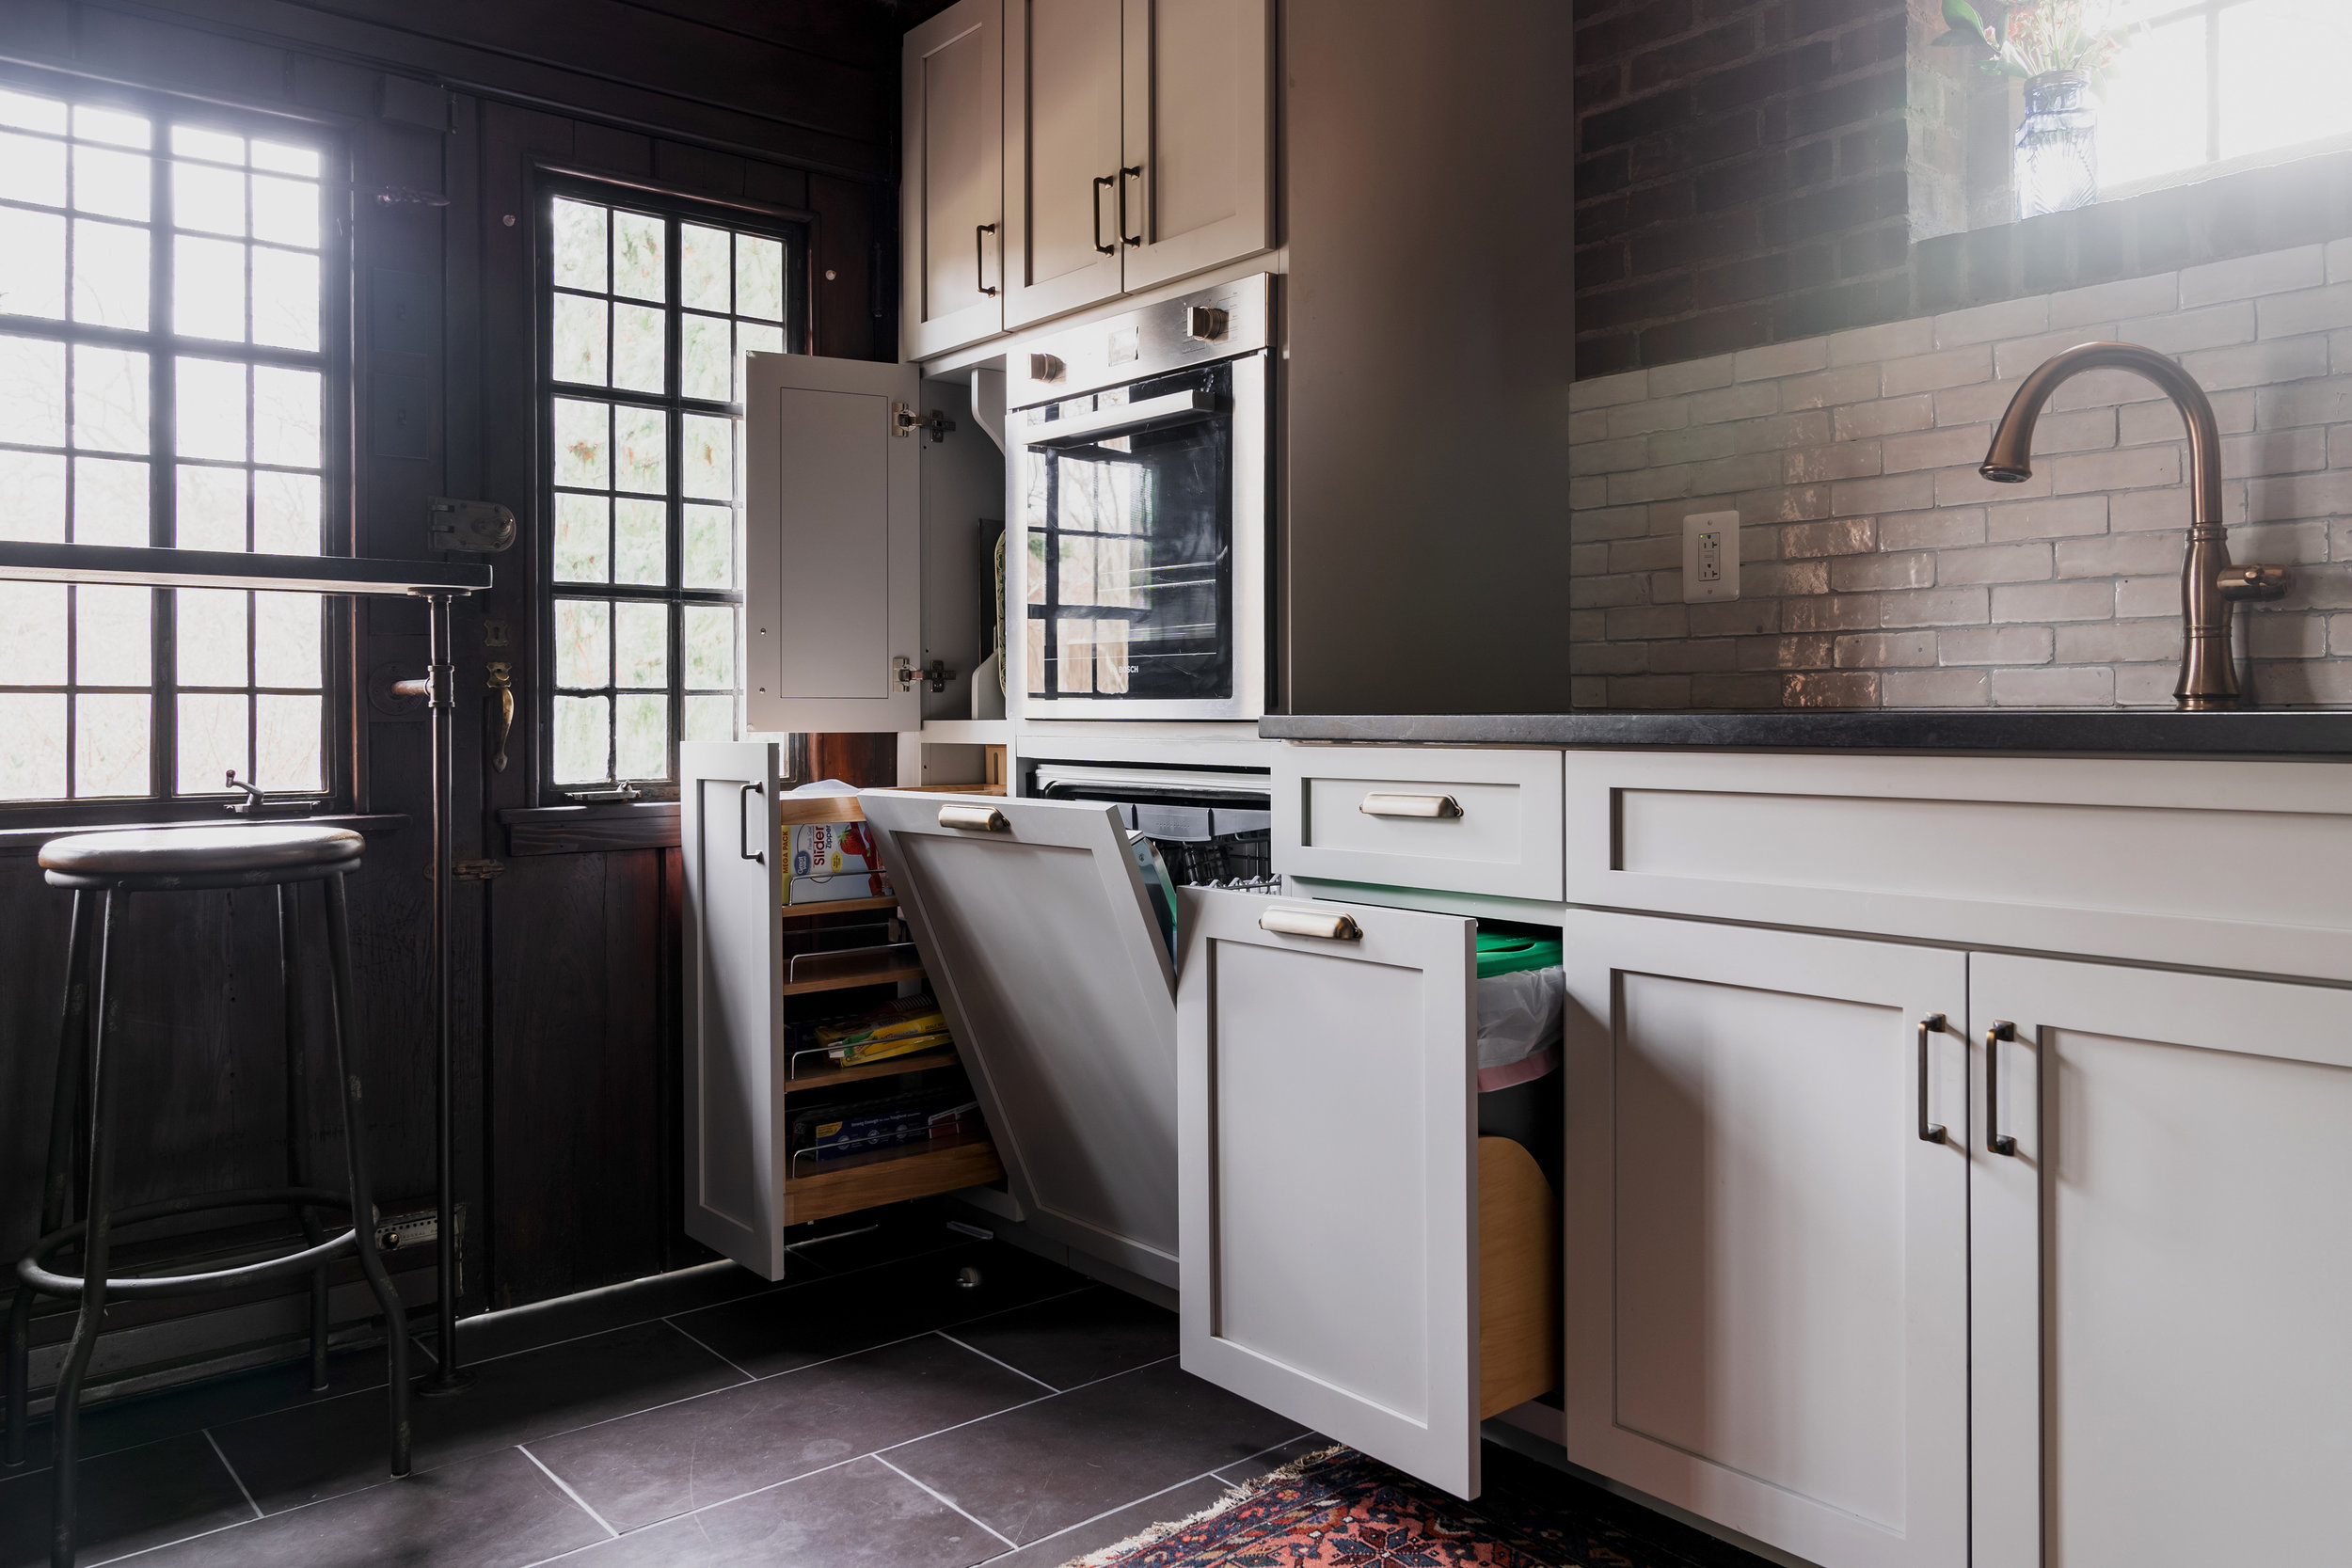 Custom cabinets can create better storage and a cleaner look.